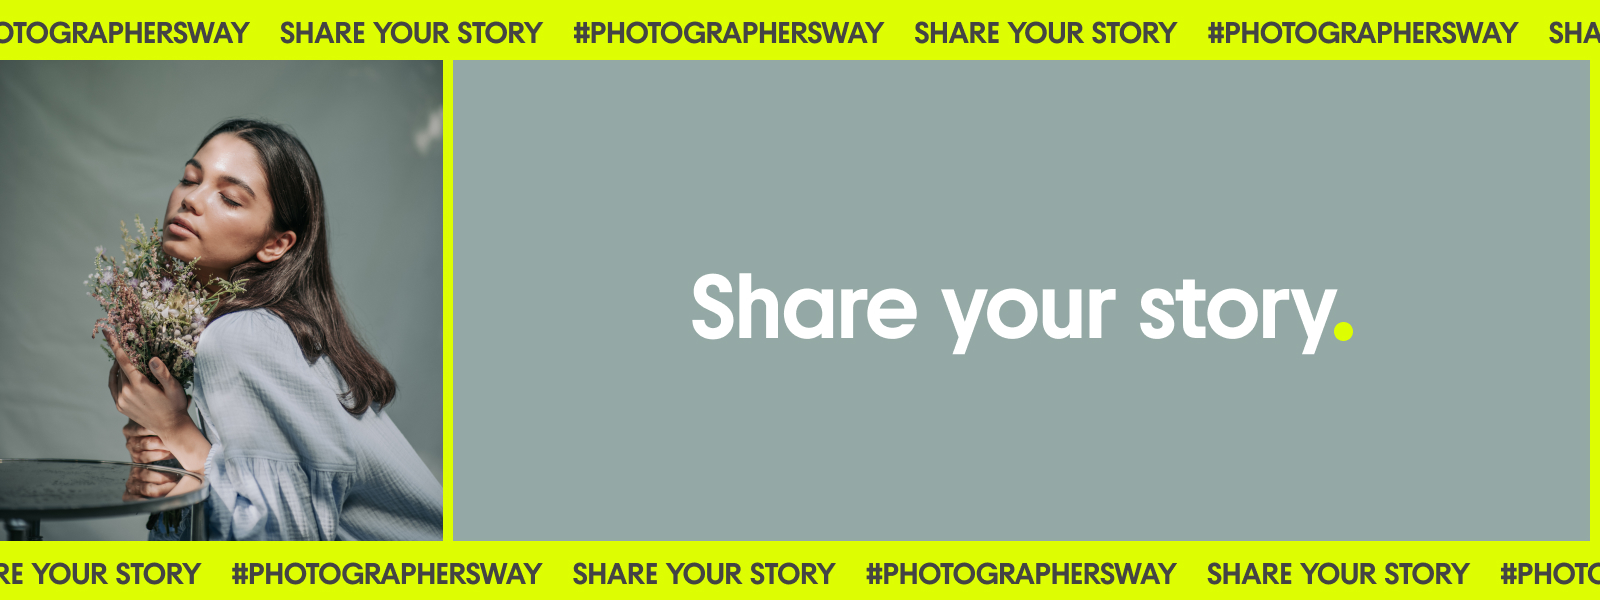 Open Call for Photographers: Share Your Story with Depositphotos